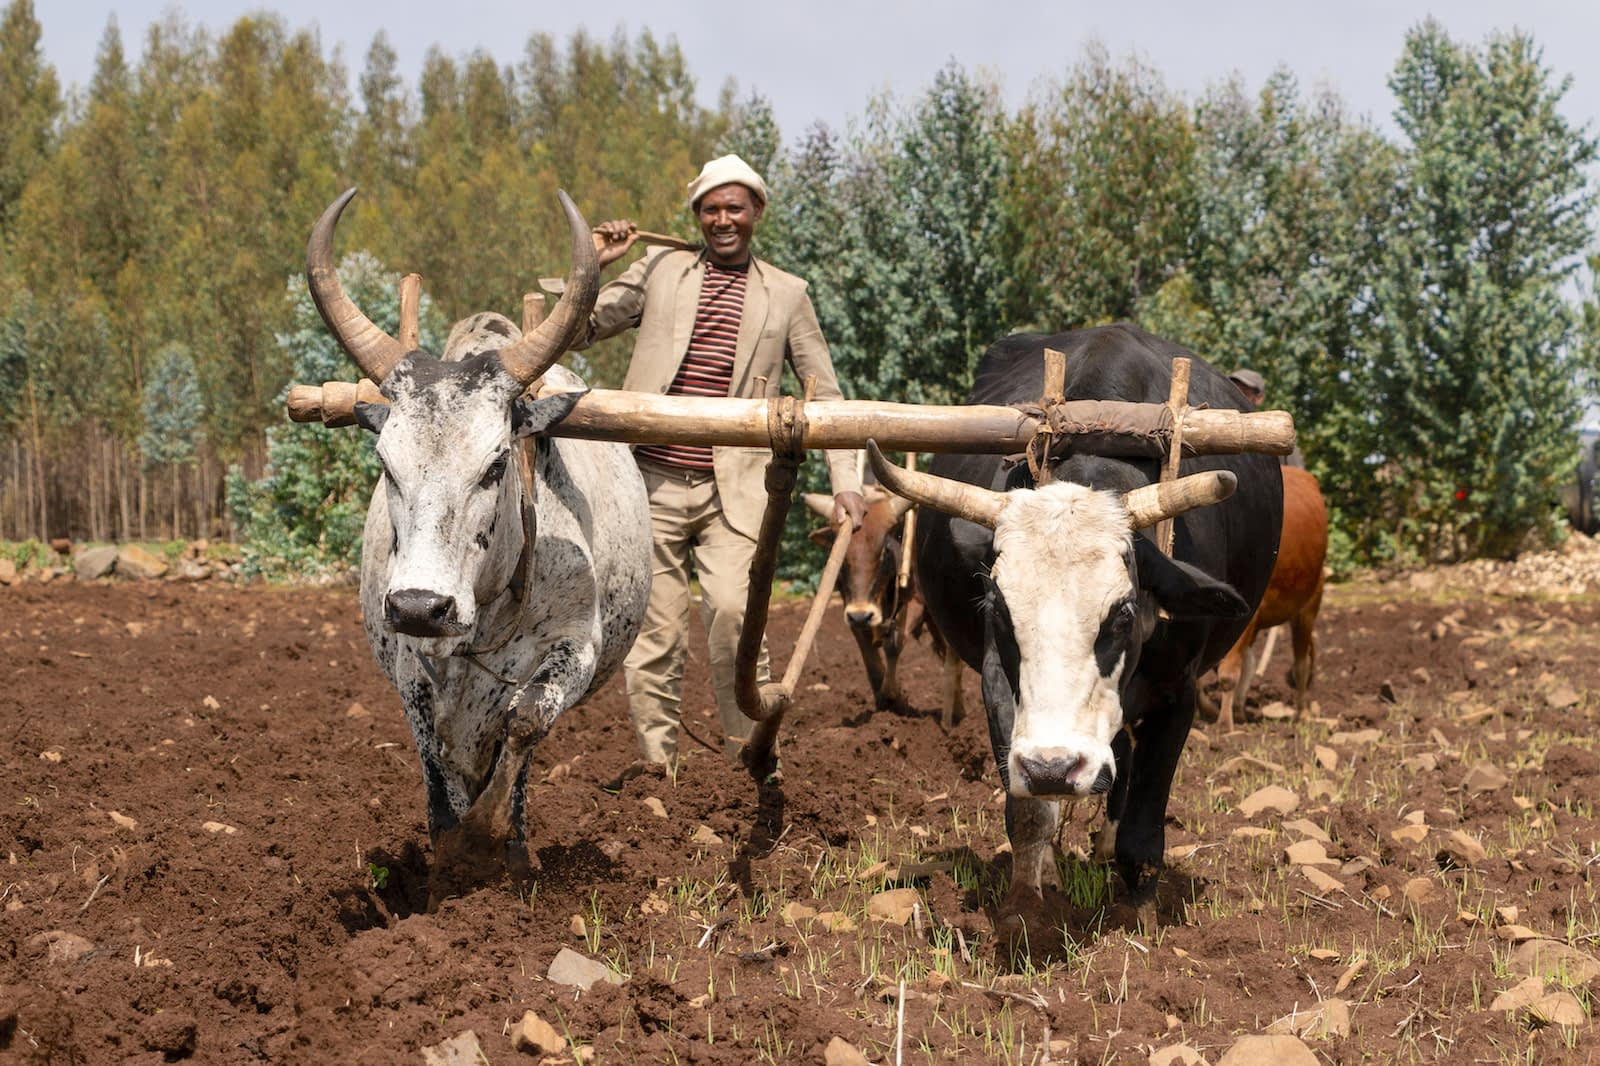 Mechanization could boost Ethiopian wheat production and provide youth with new job opportunities. (Photo: Gerardo Mejía/CIMMYT)